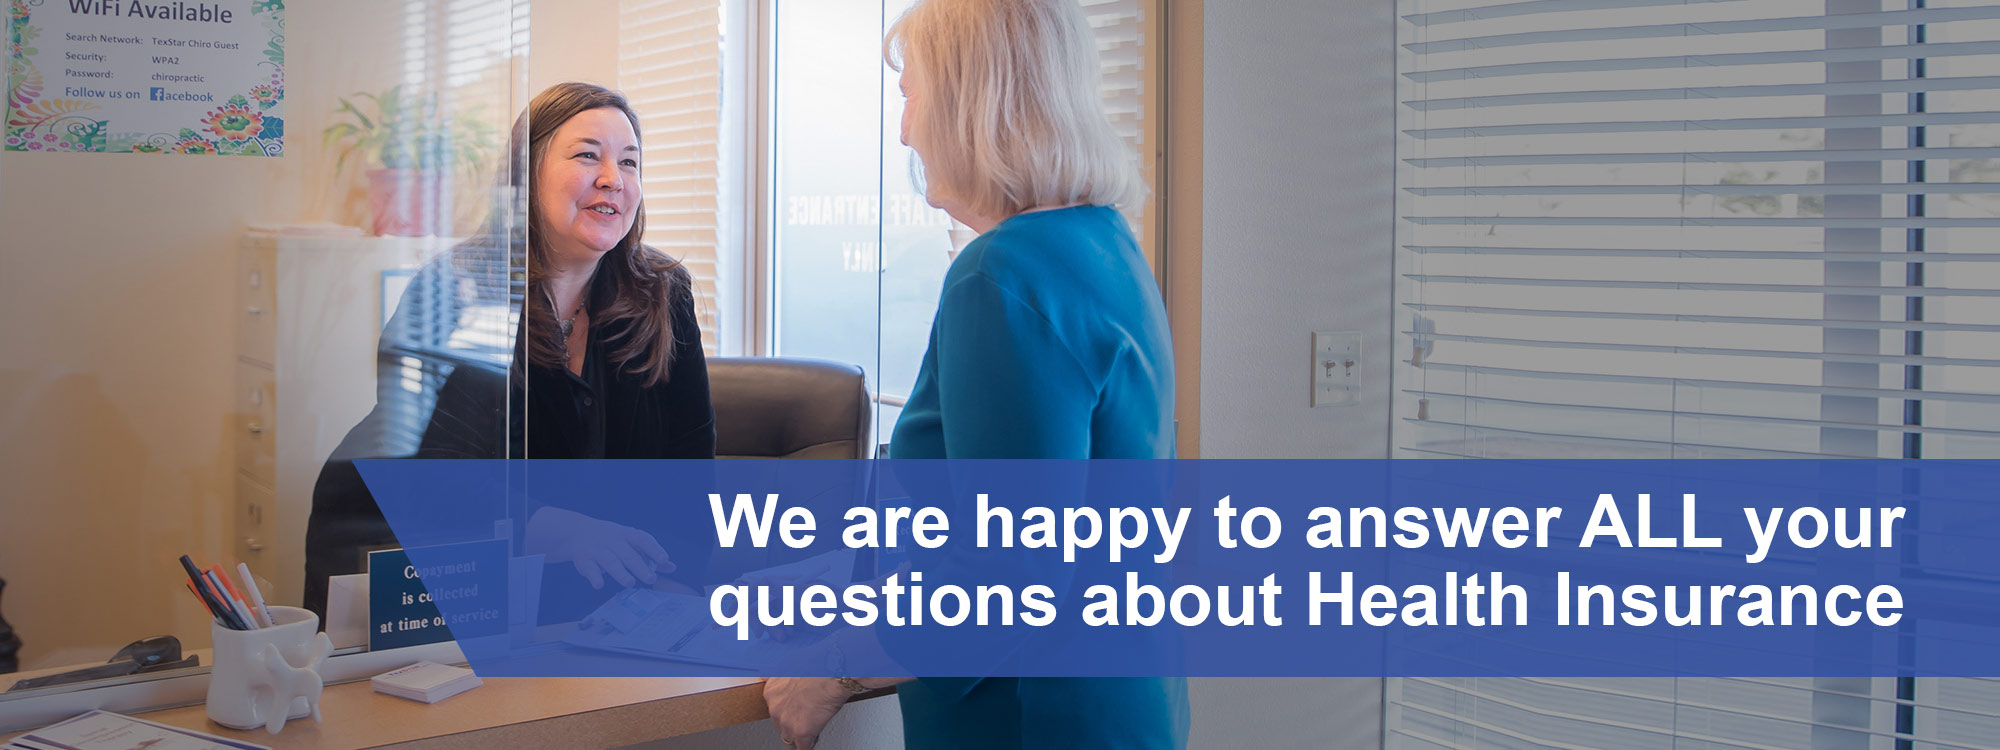 We are happy to answer ALL your questions about Health Insurance